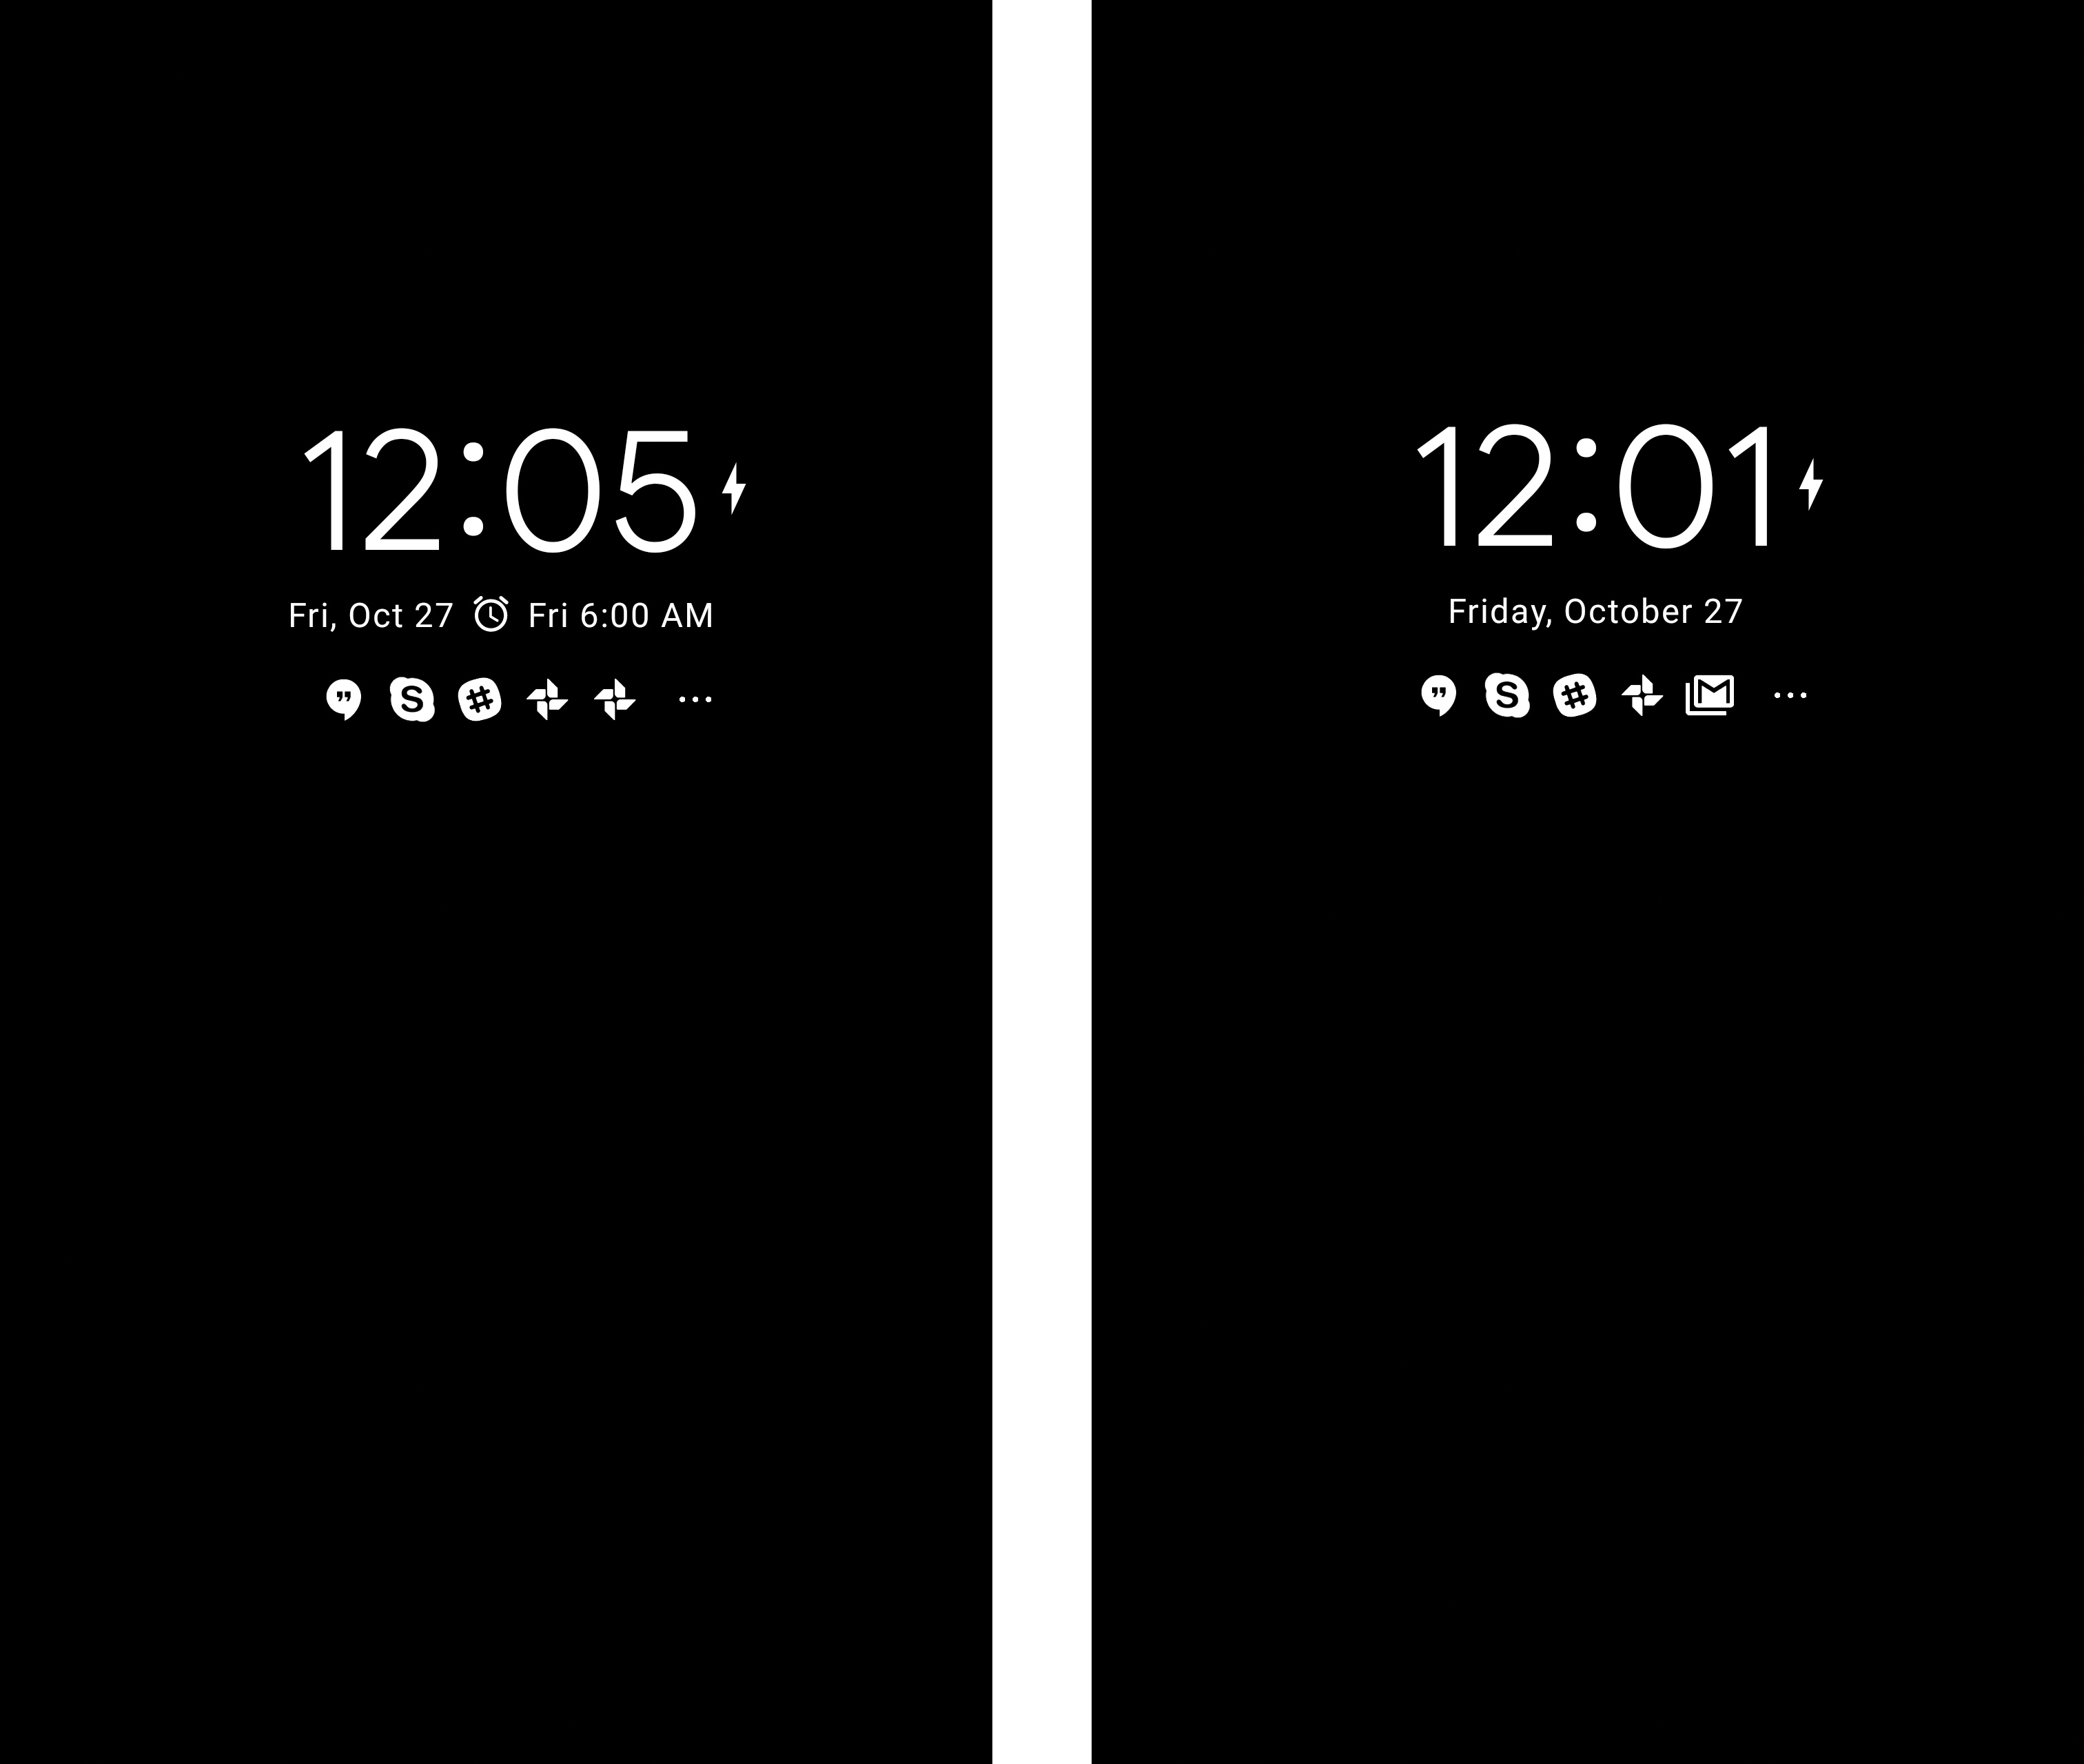 it was a very minimal interface rather than being a monochrome version of the lock screen